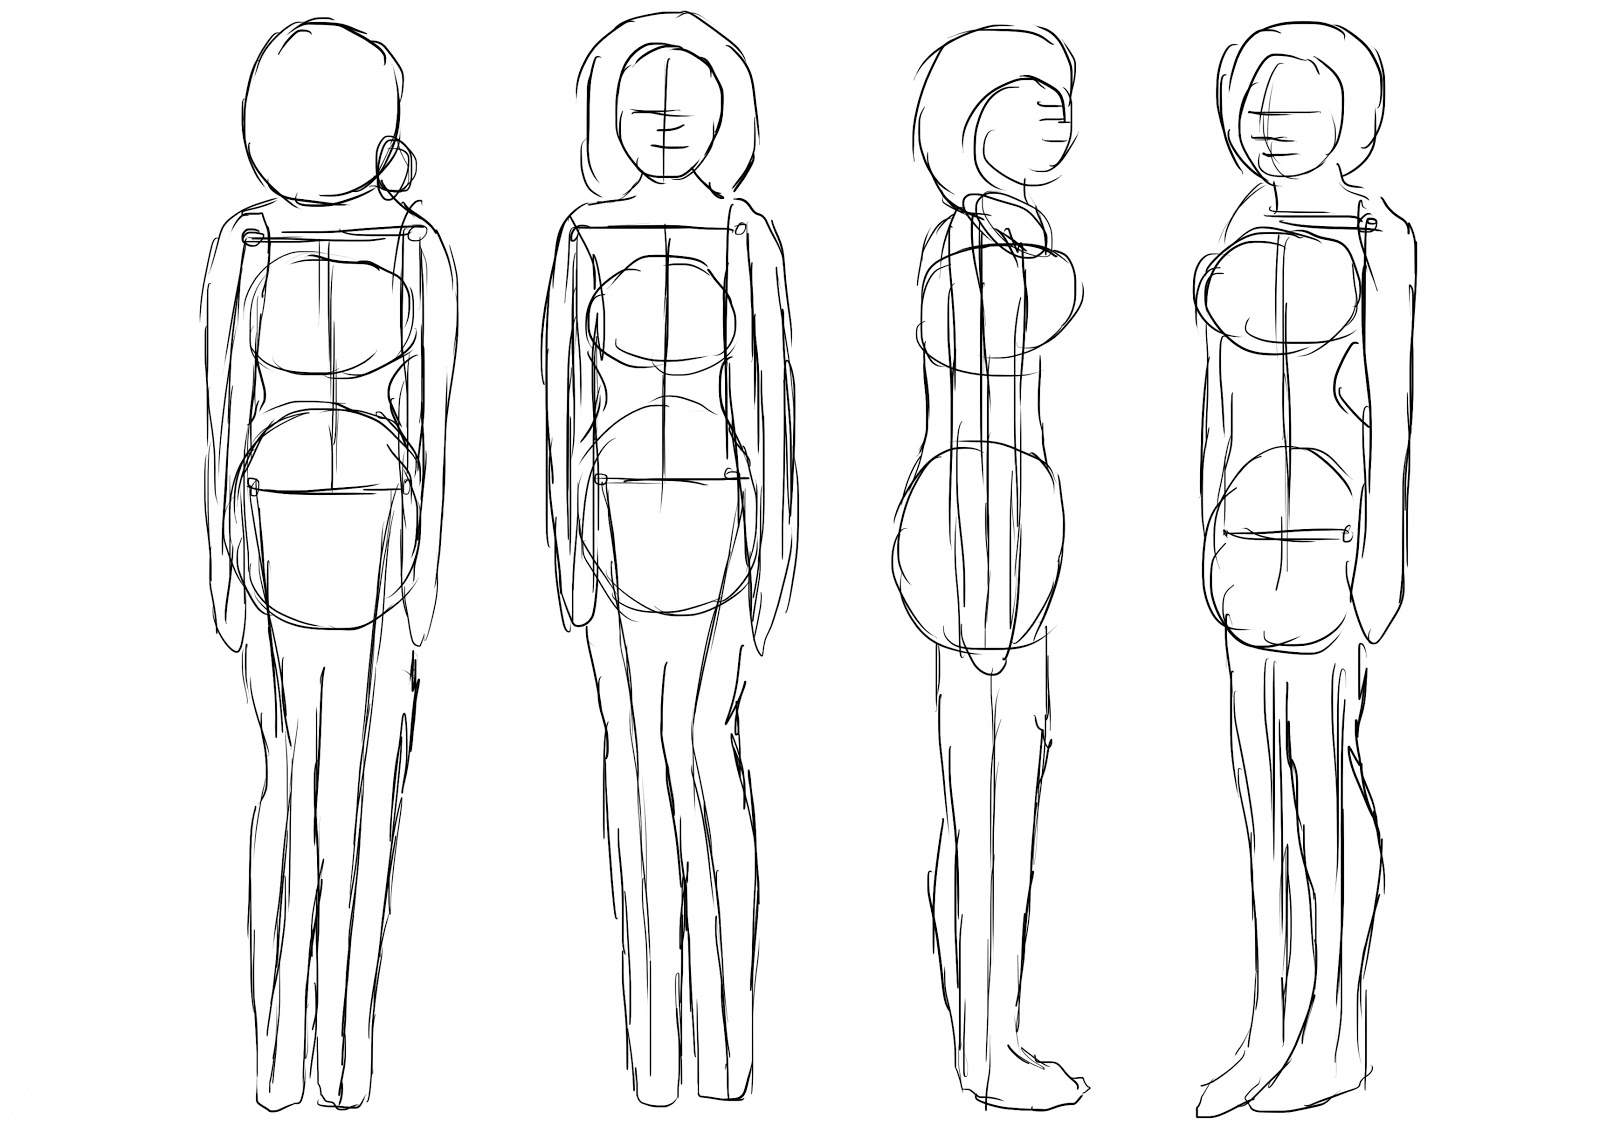 Character Design Outline : Brooke hayes animation november